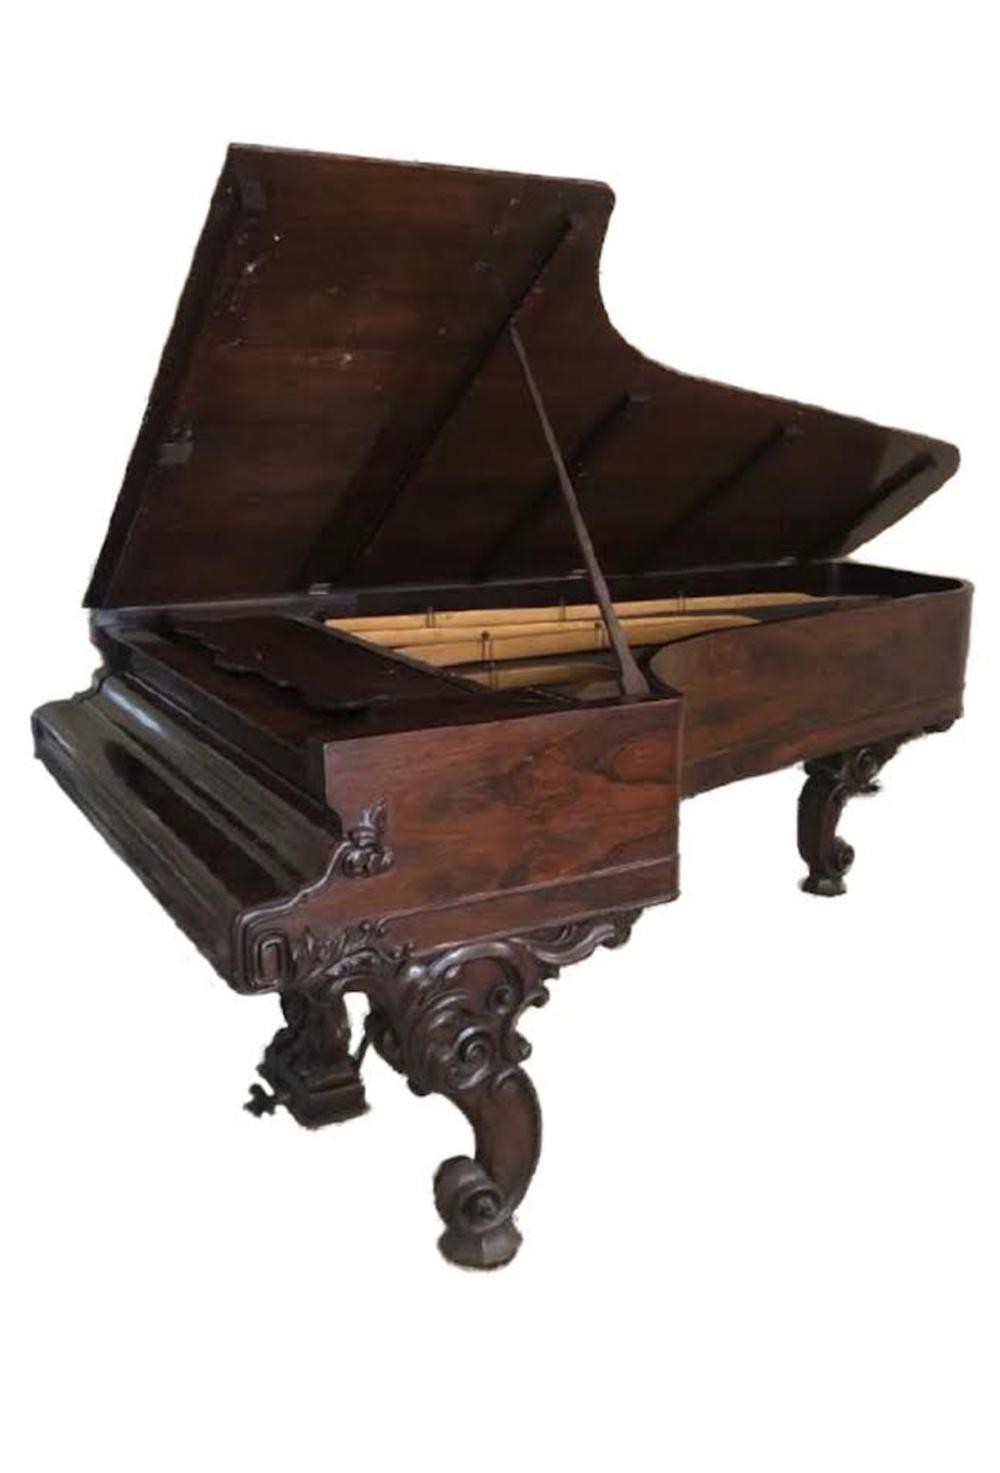 Antique 1859 Steinway Rosewood Concert Grand Piano